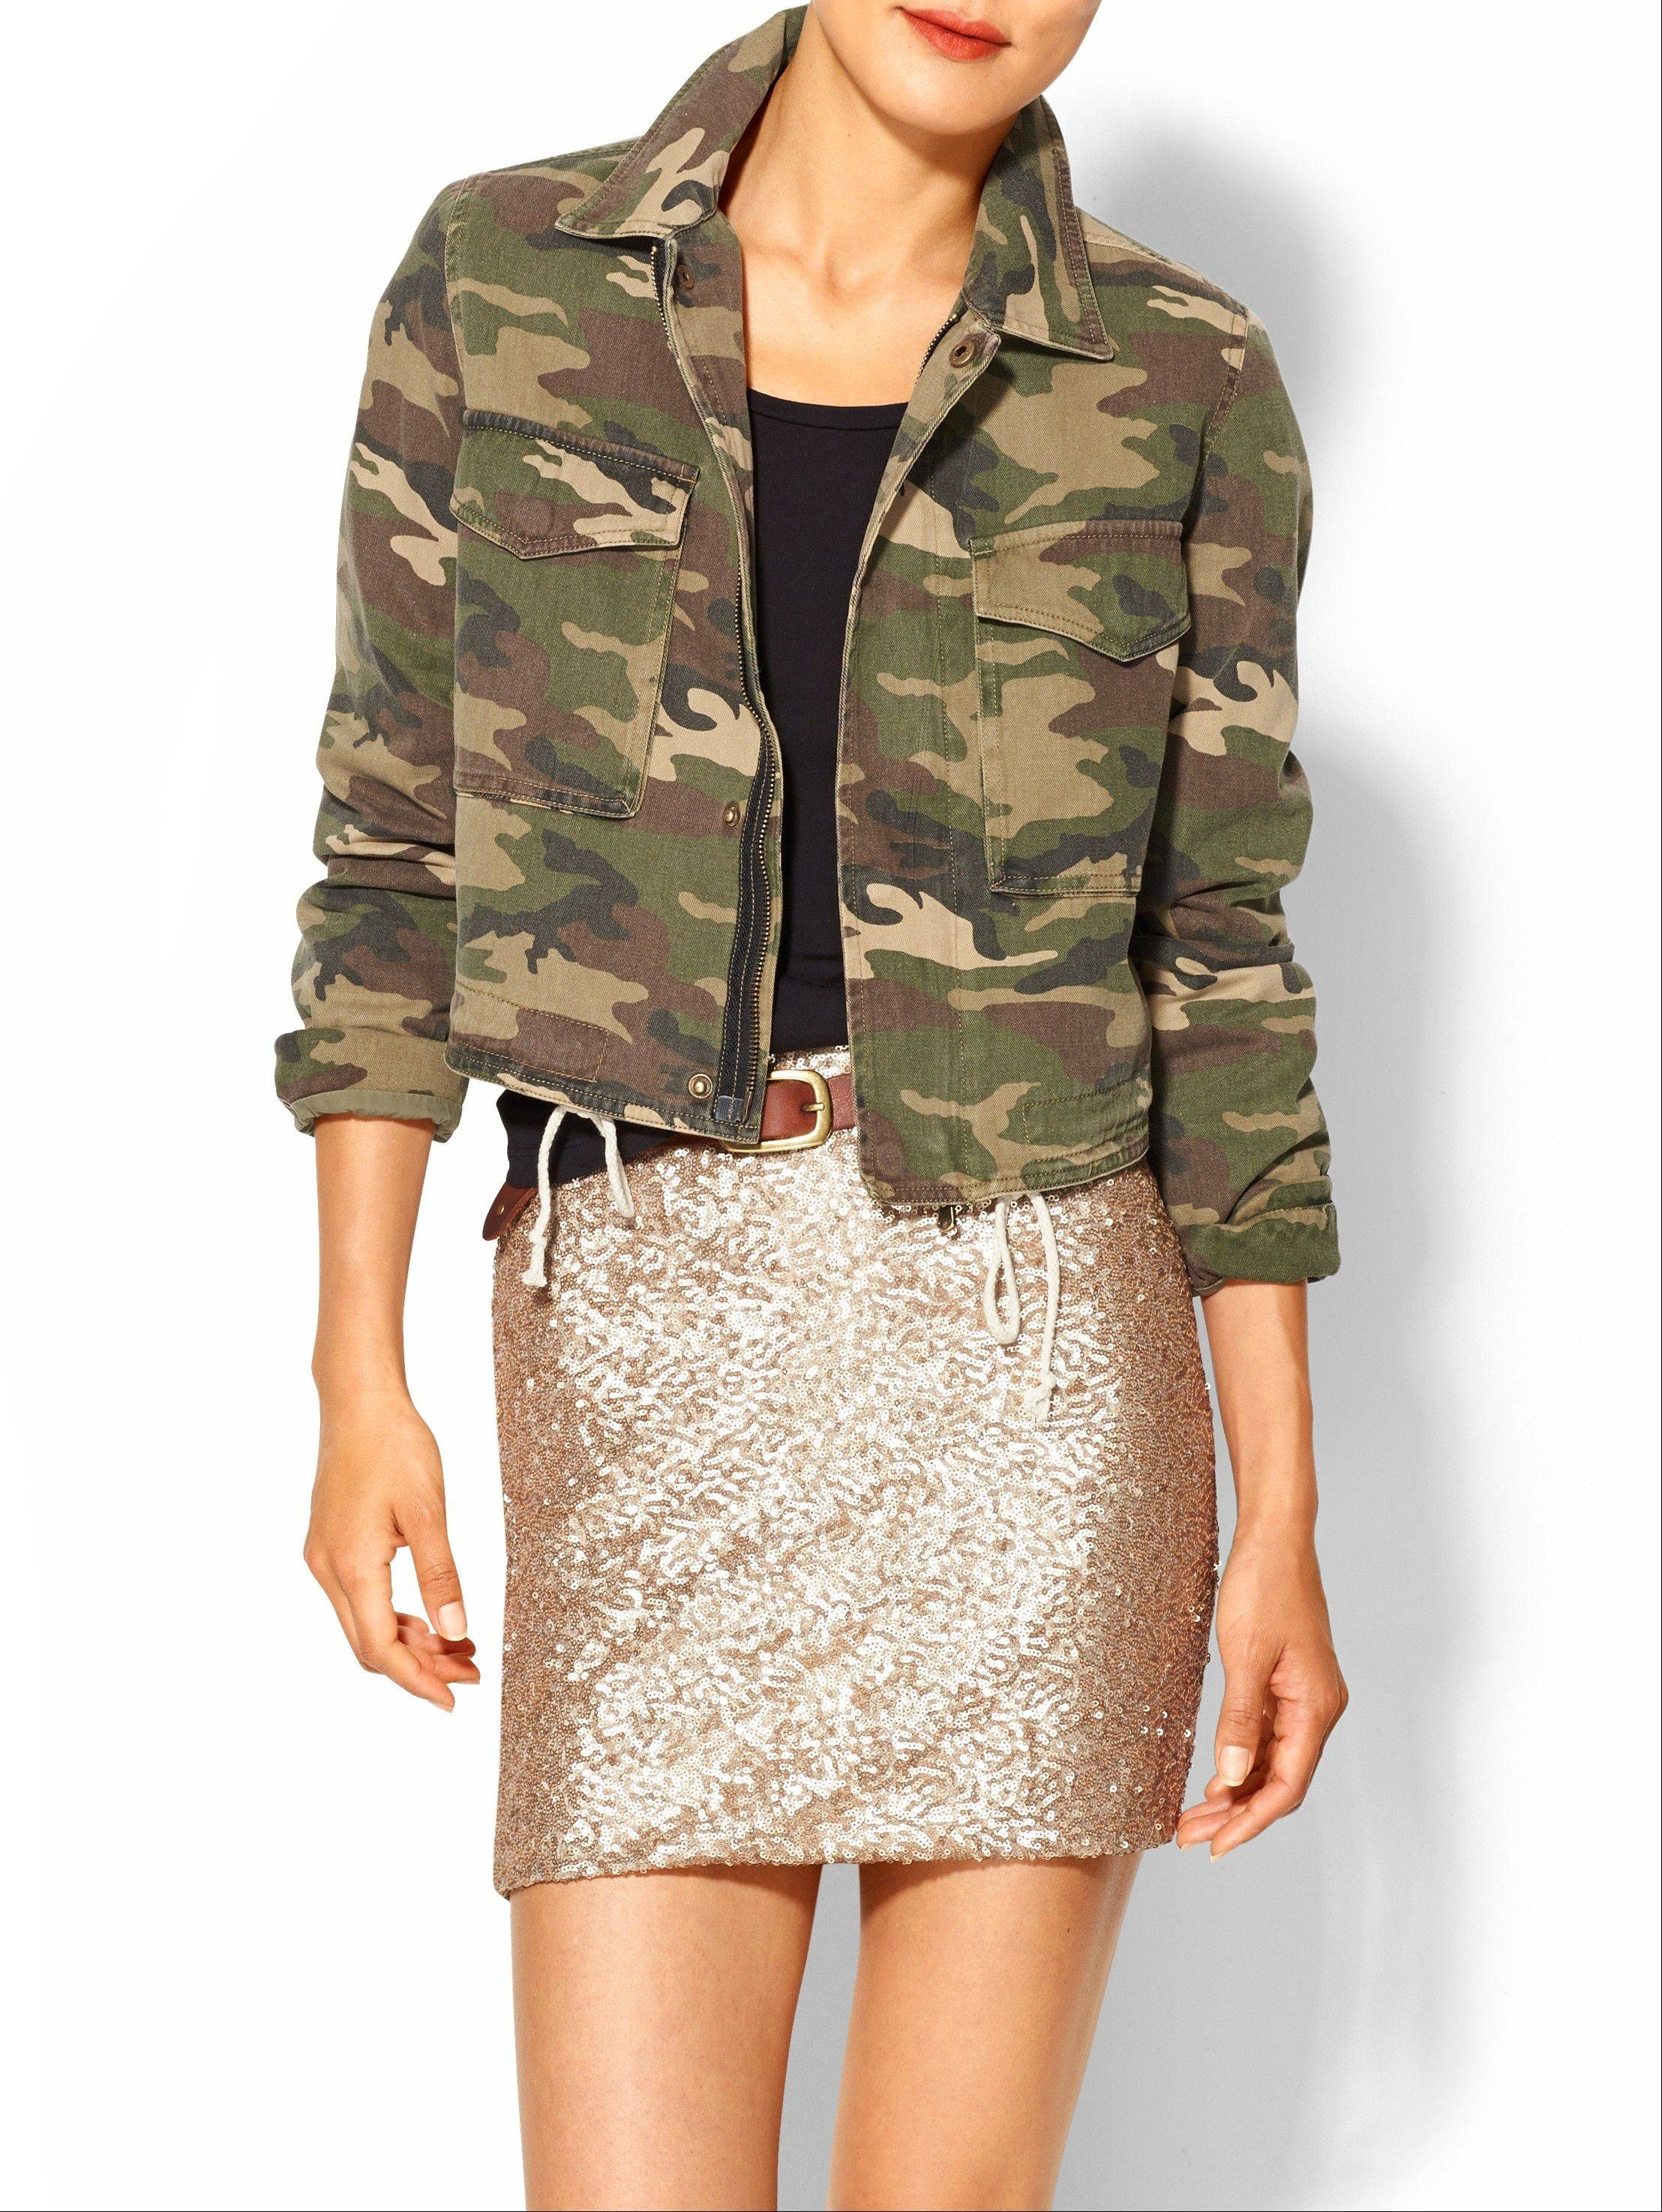 Camouflage has been adapted in luxe fur, sequin sweaters, athletic wear and casual kicks. Piperlime is offering a camouflage cropped military jacket this season.